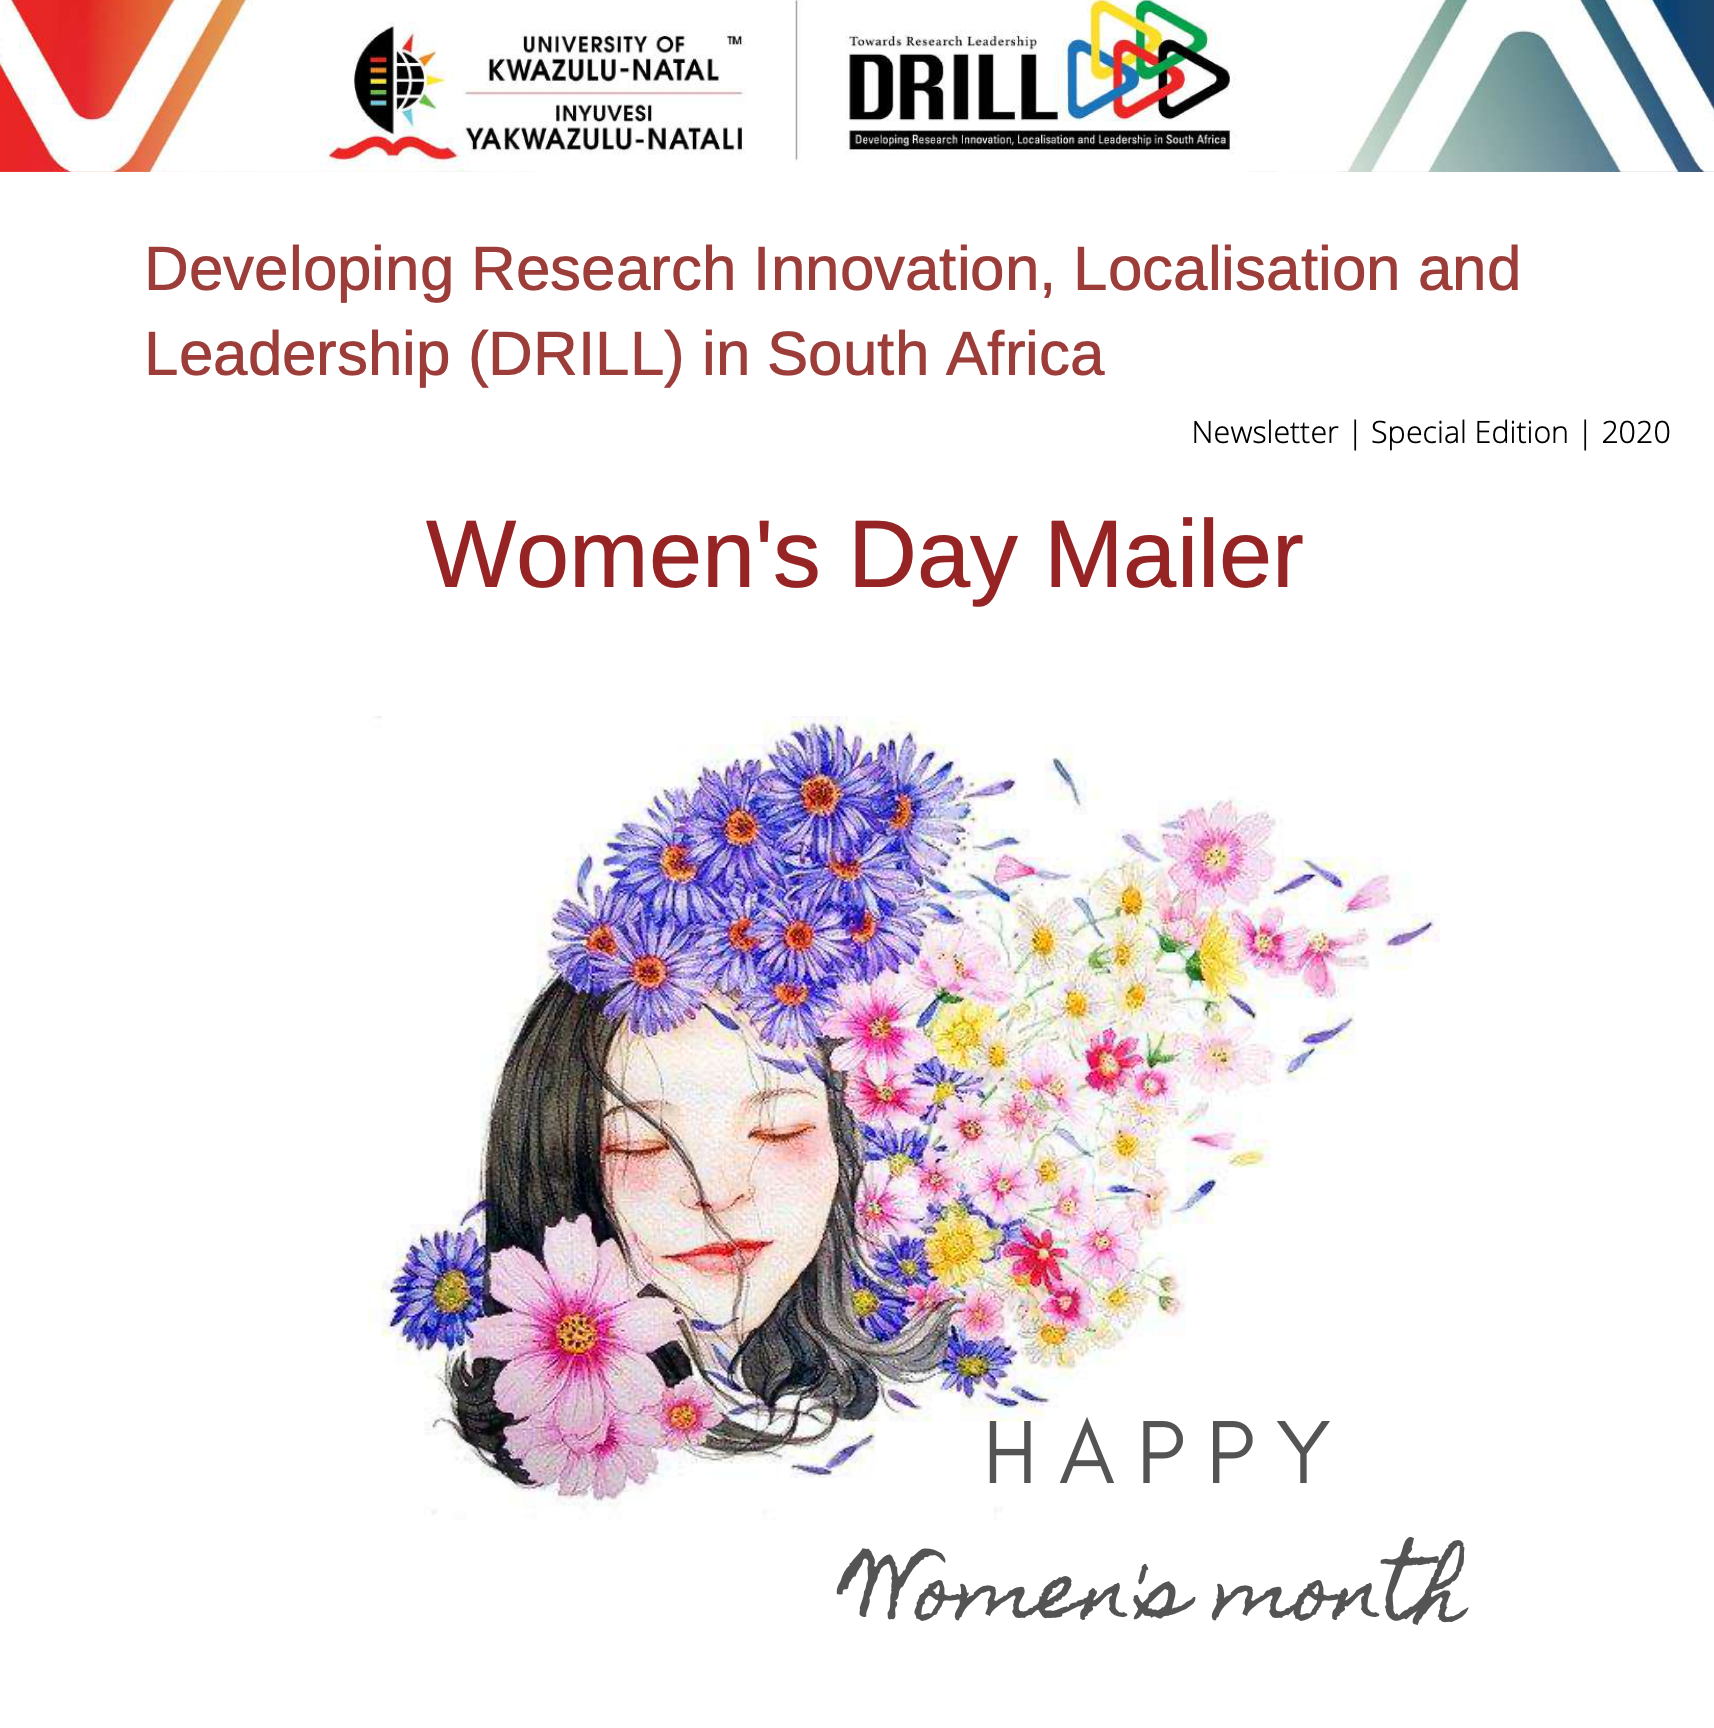 Developing Research Innovation, Localisation and Leadership (DRILL) in South Africa's Special Women's Day Mailer